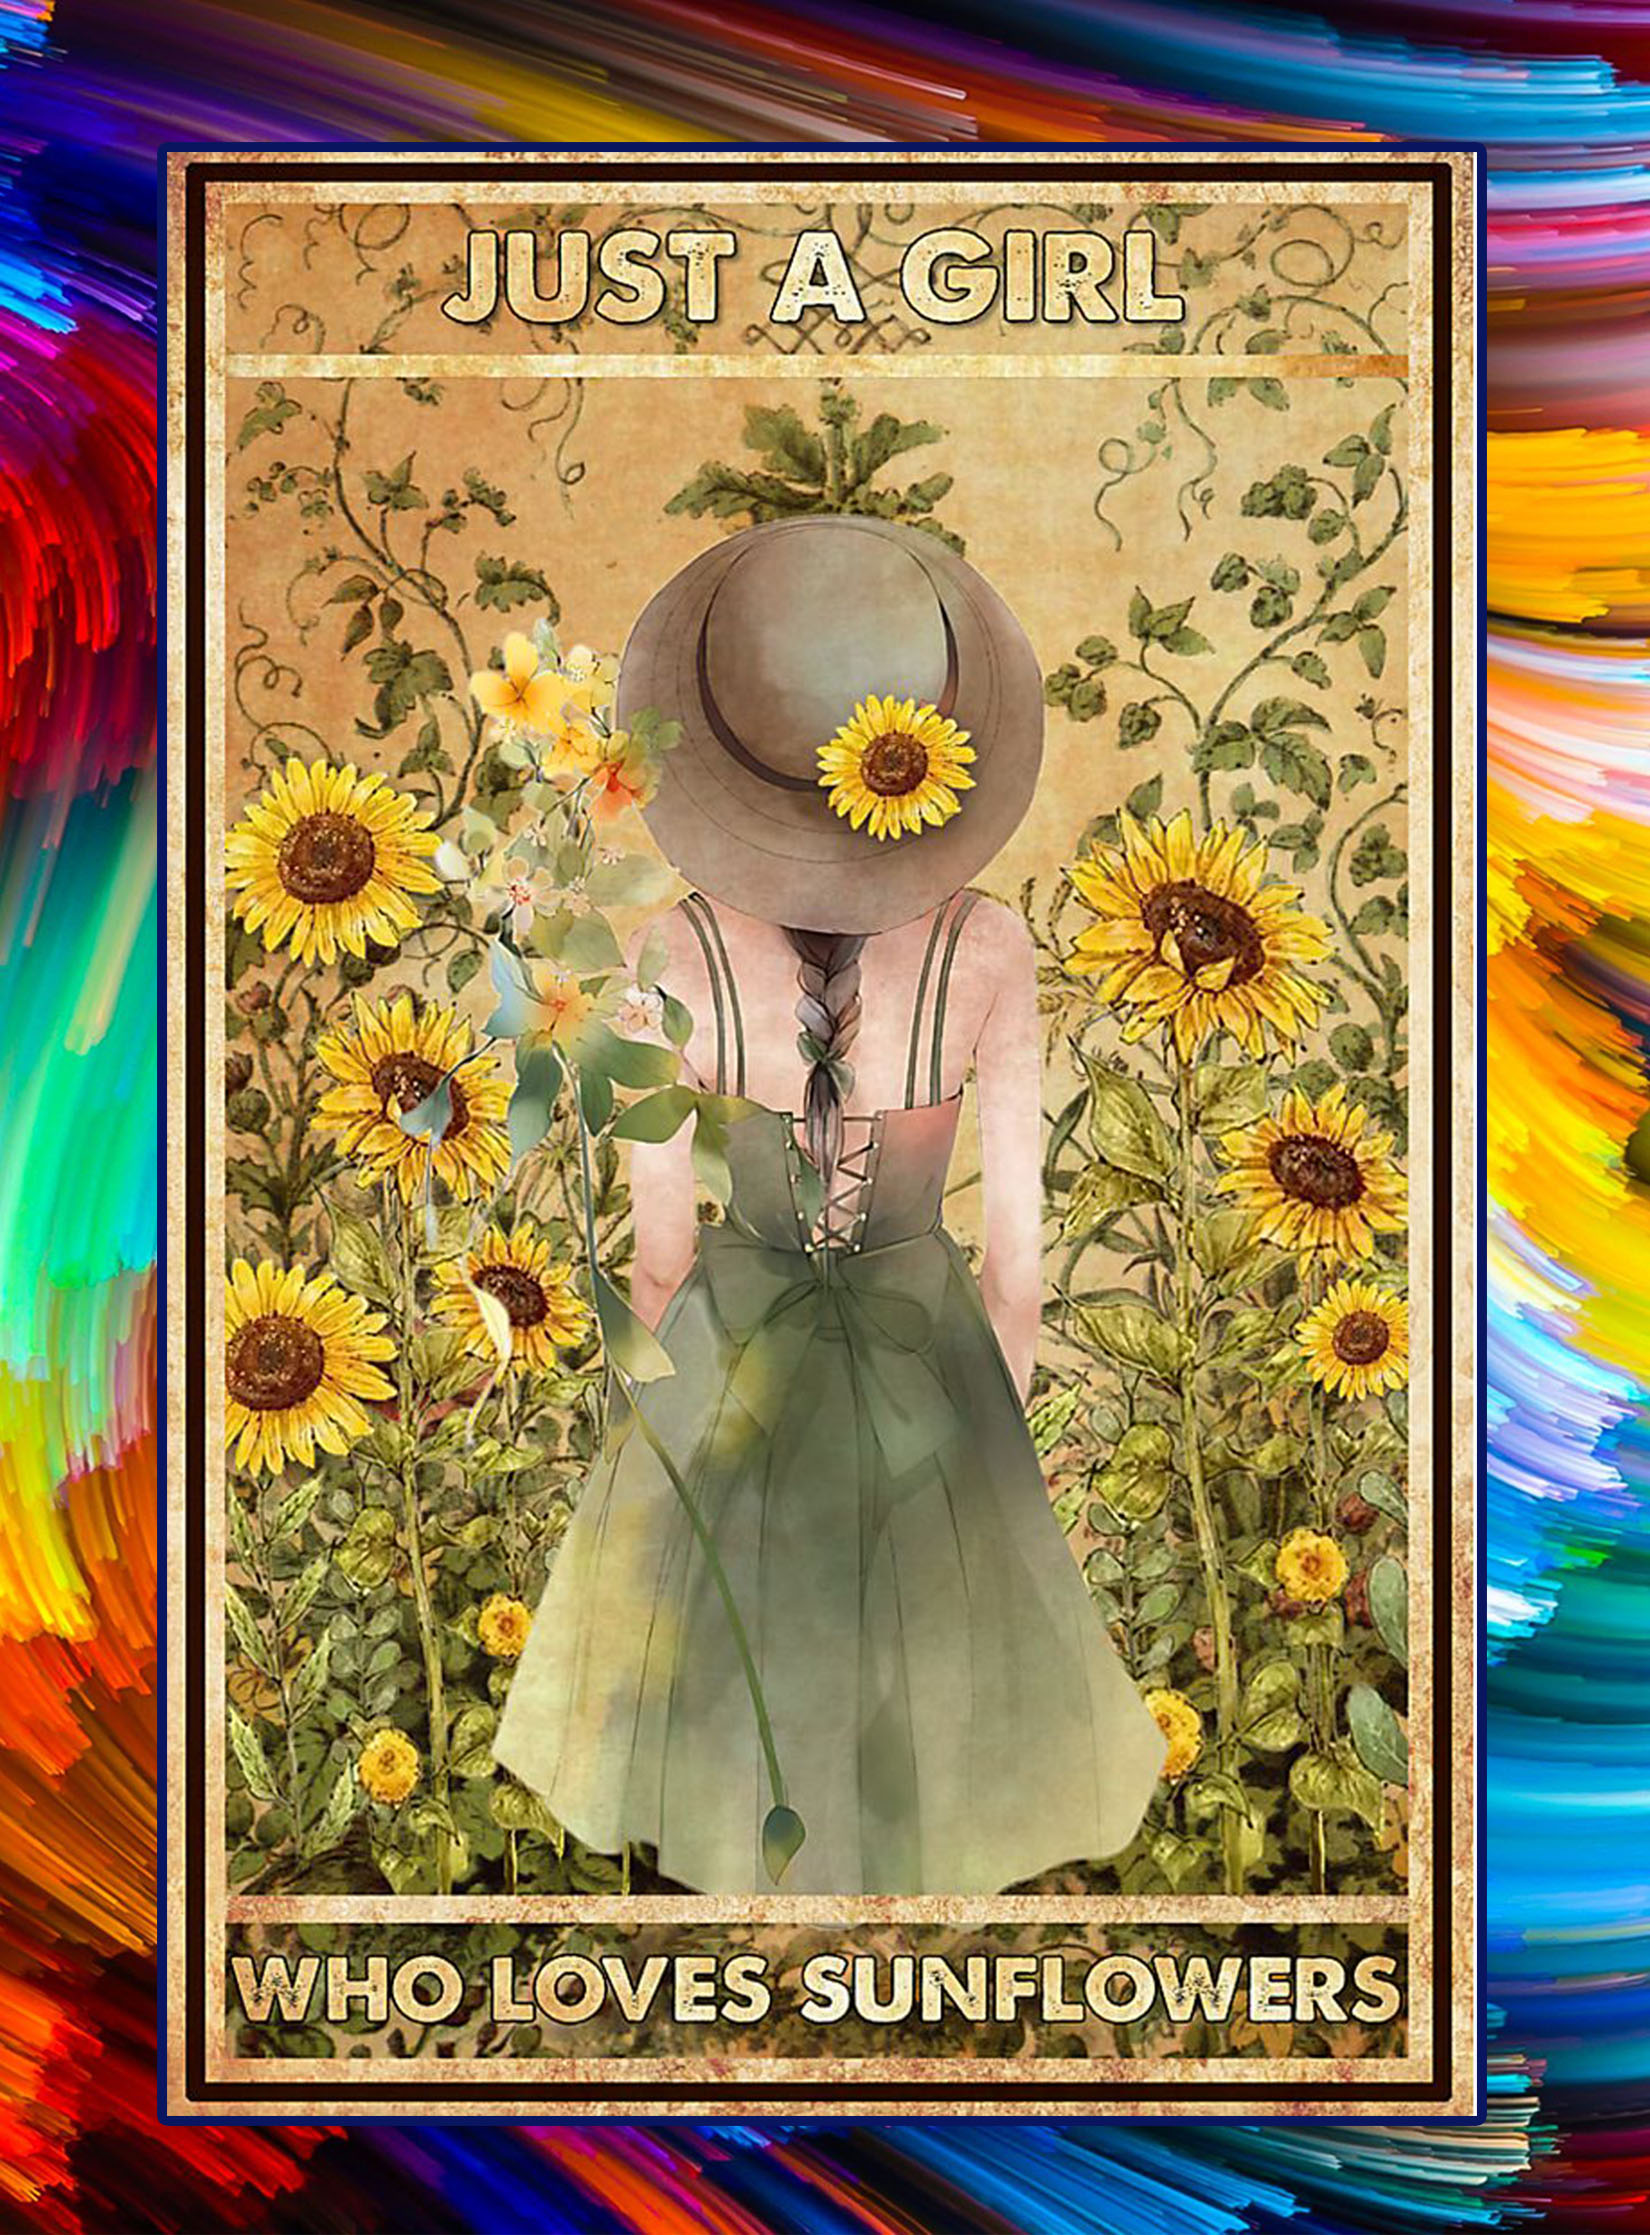 Just a girl who loves sunflowers poster - A4